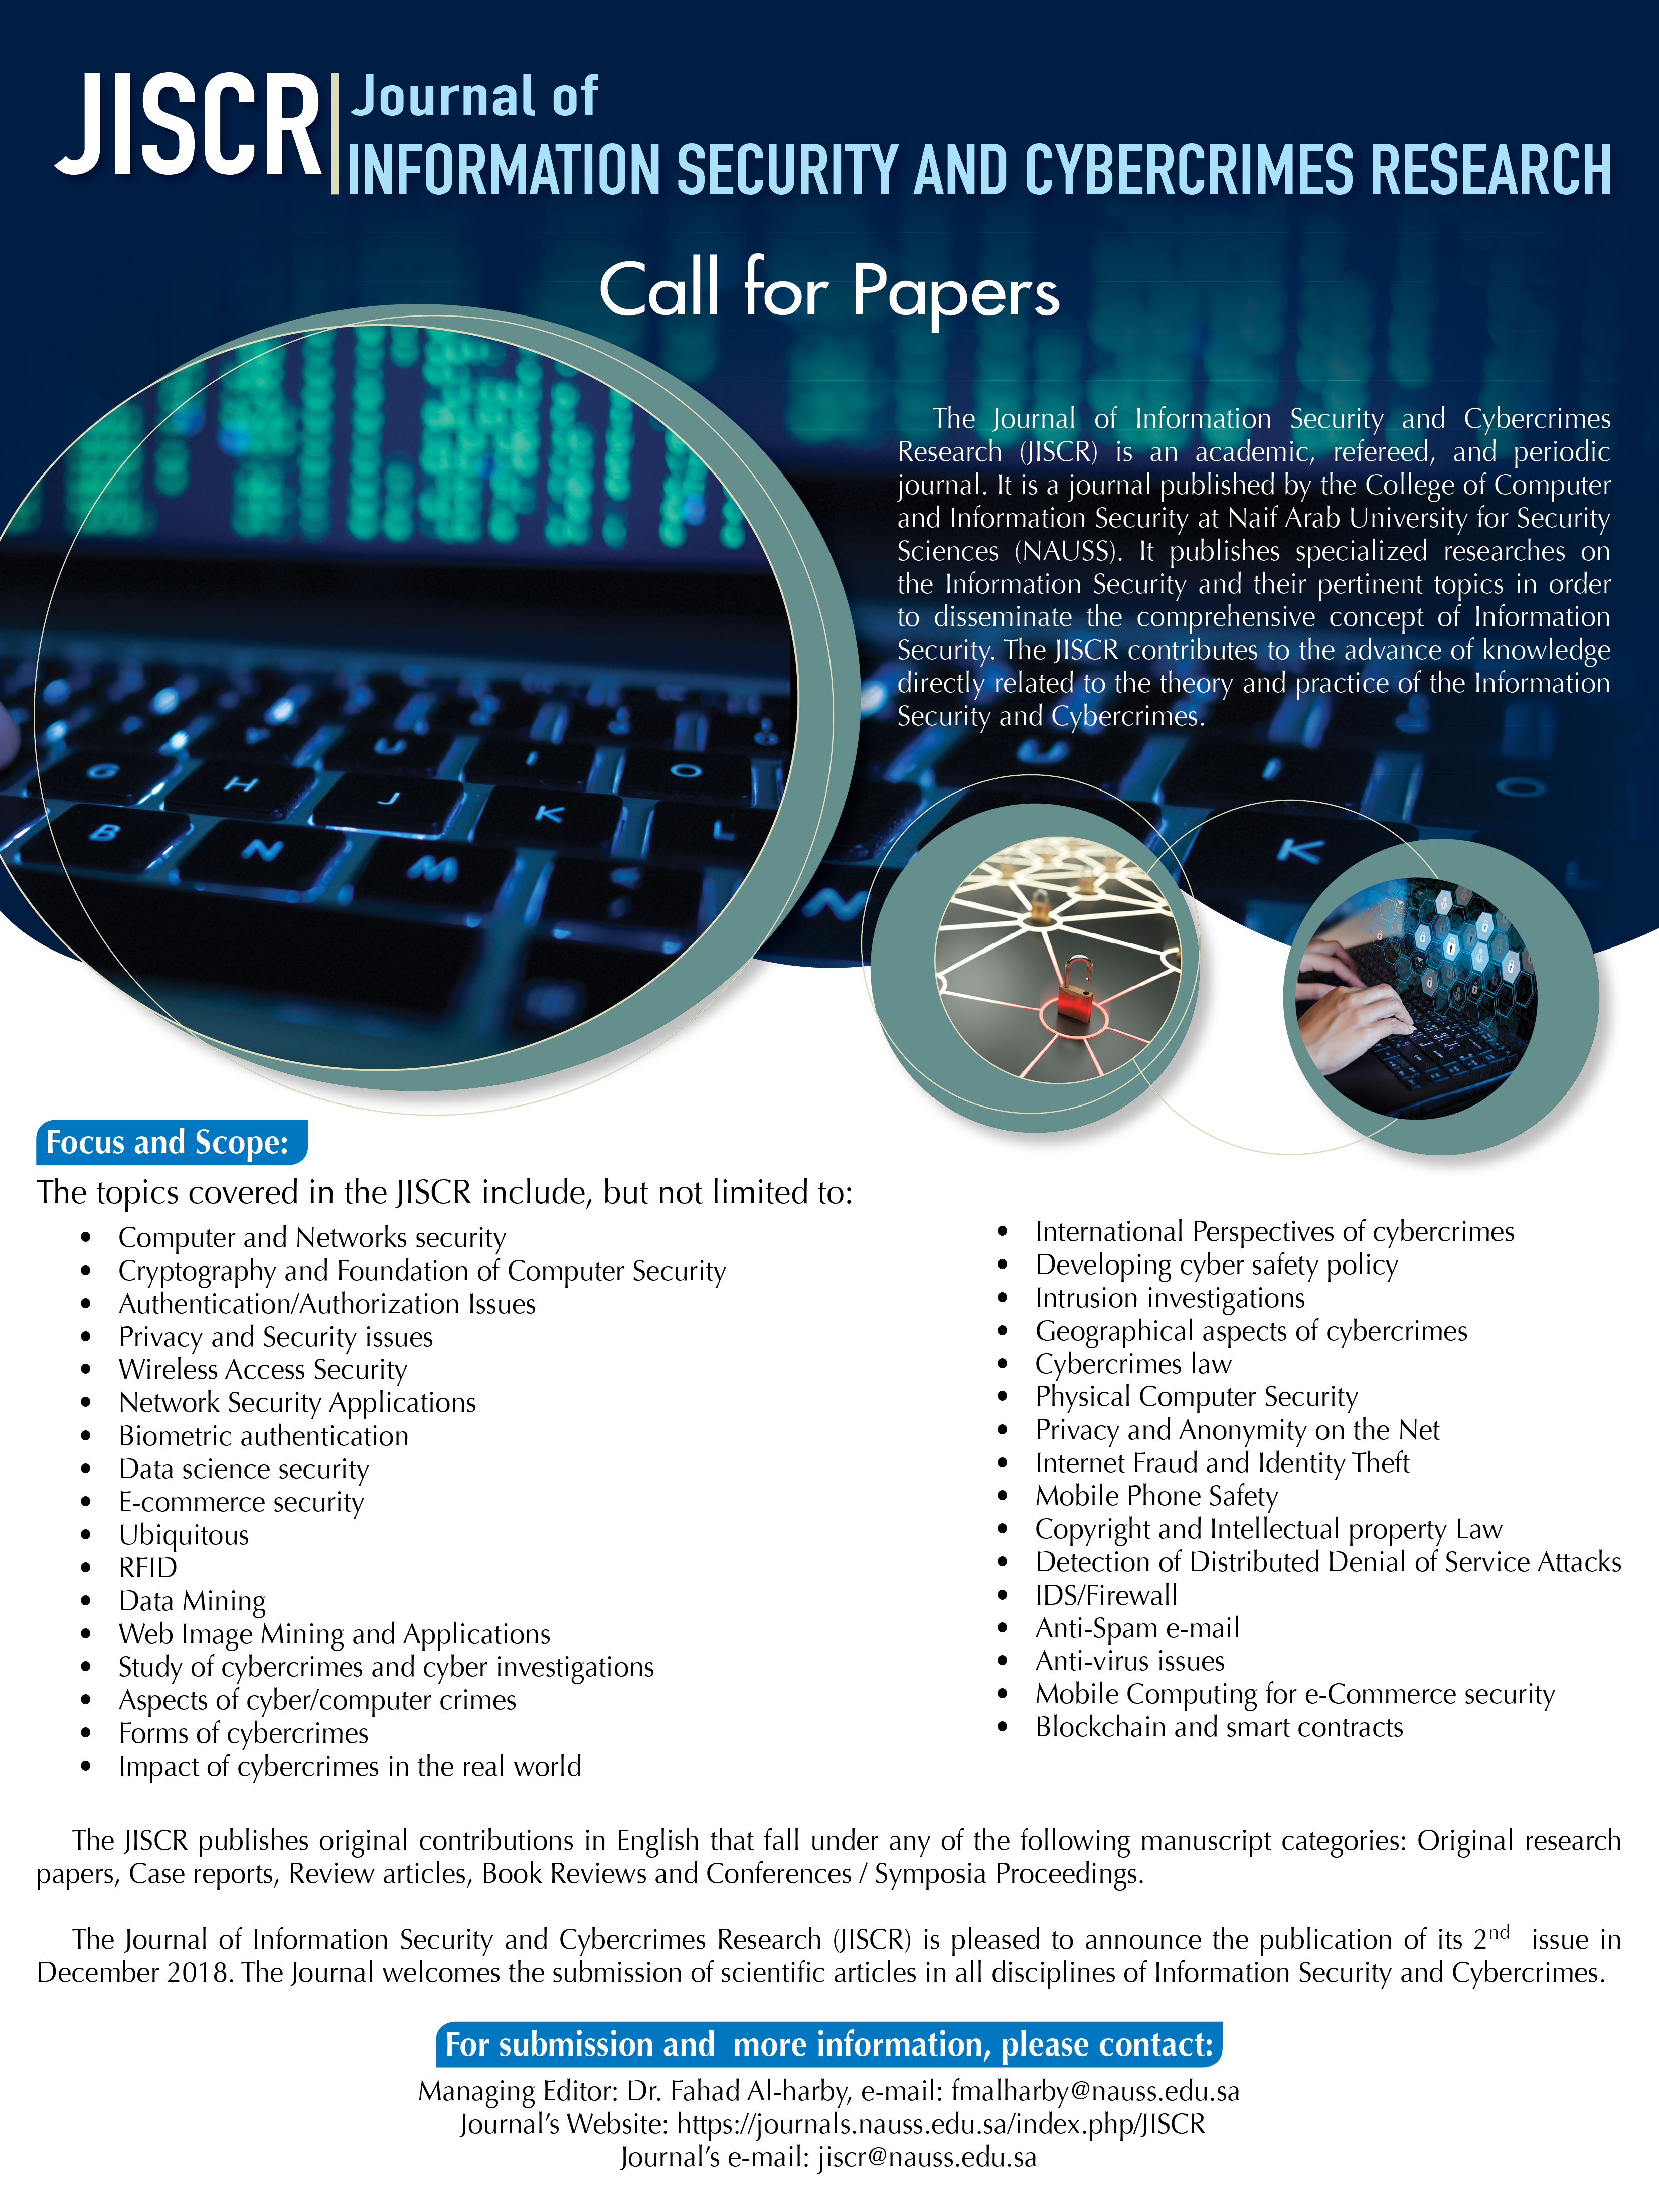 020 Research Paper Papers On Cyber Security Call For December Wonderful In E Commerce Topics Pdf Full